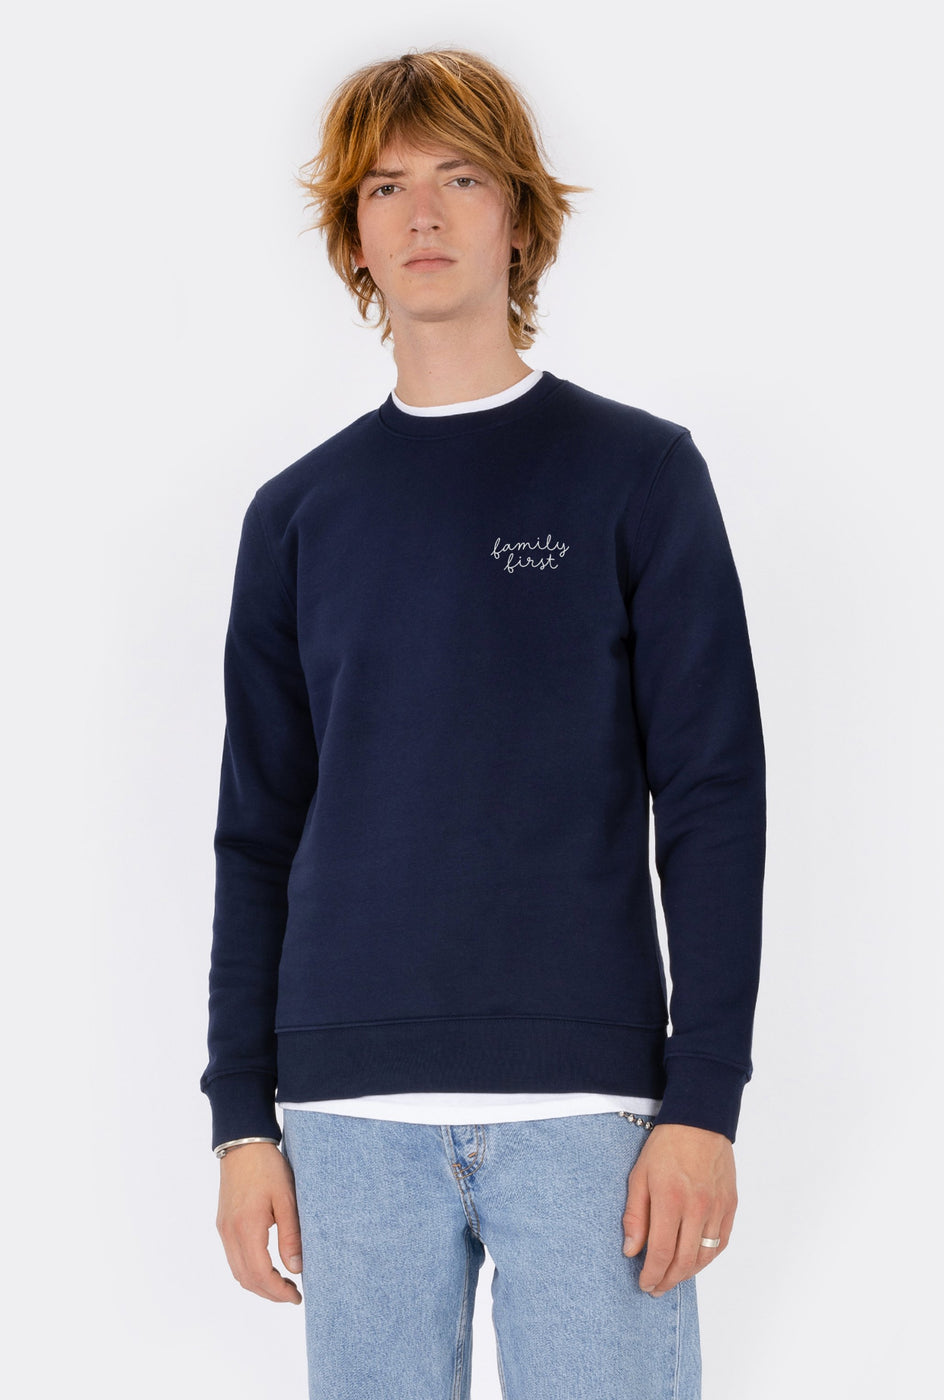 Crewneck Family First - Embroidered